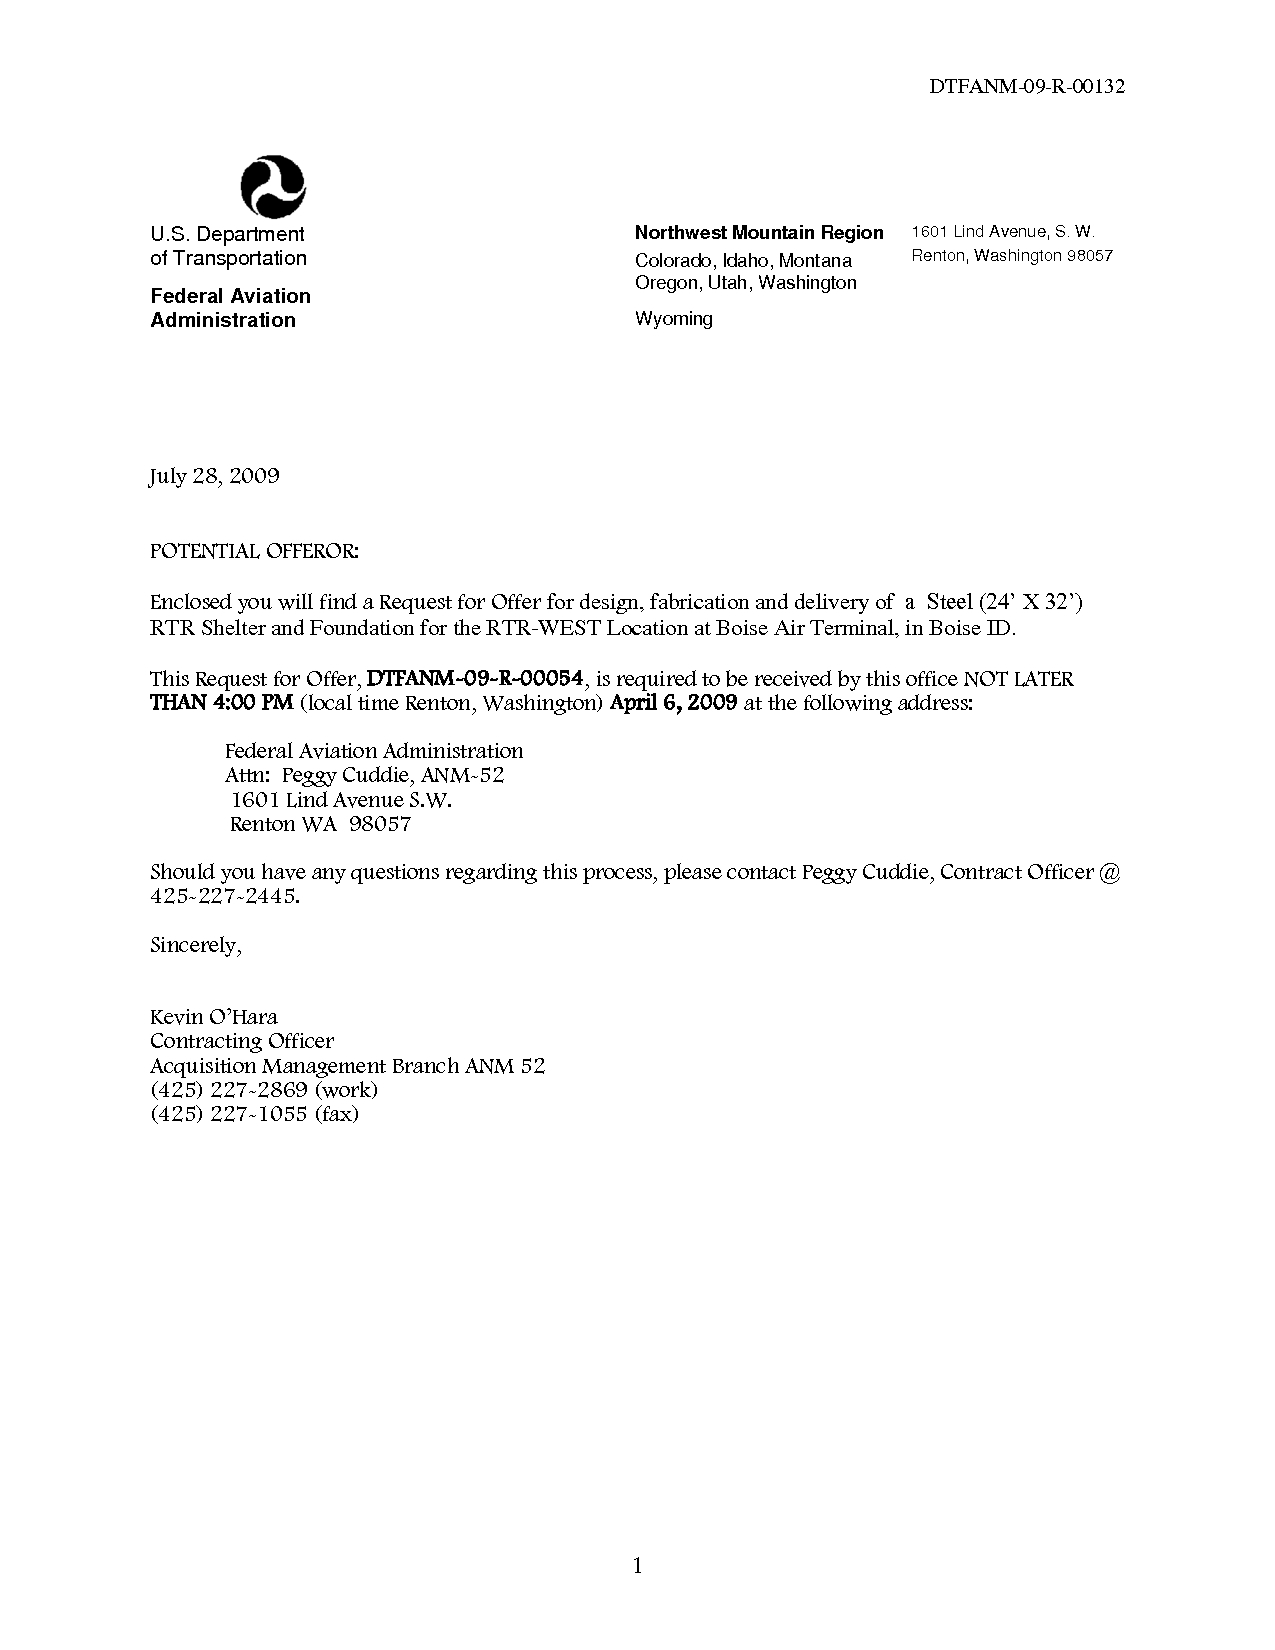 Free Rental Reference Letter Template - 18 Sample Reference Letter From Employer